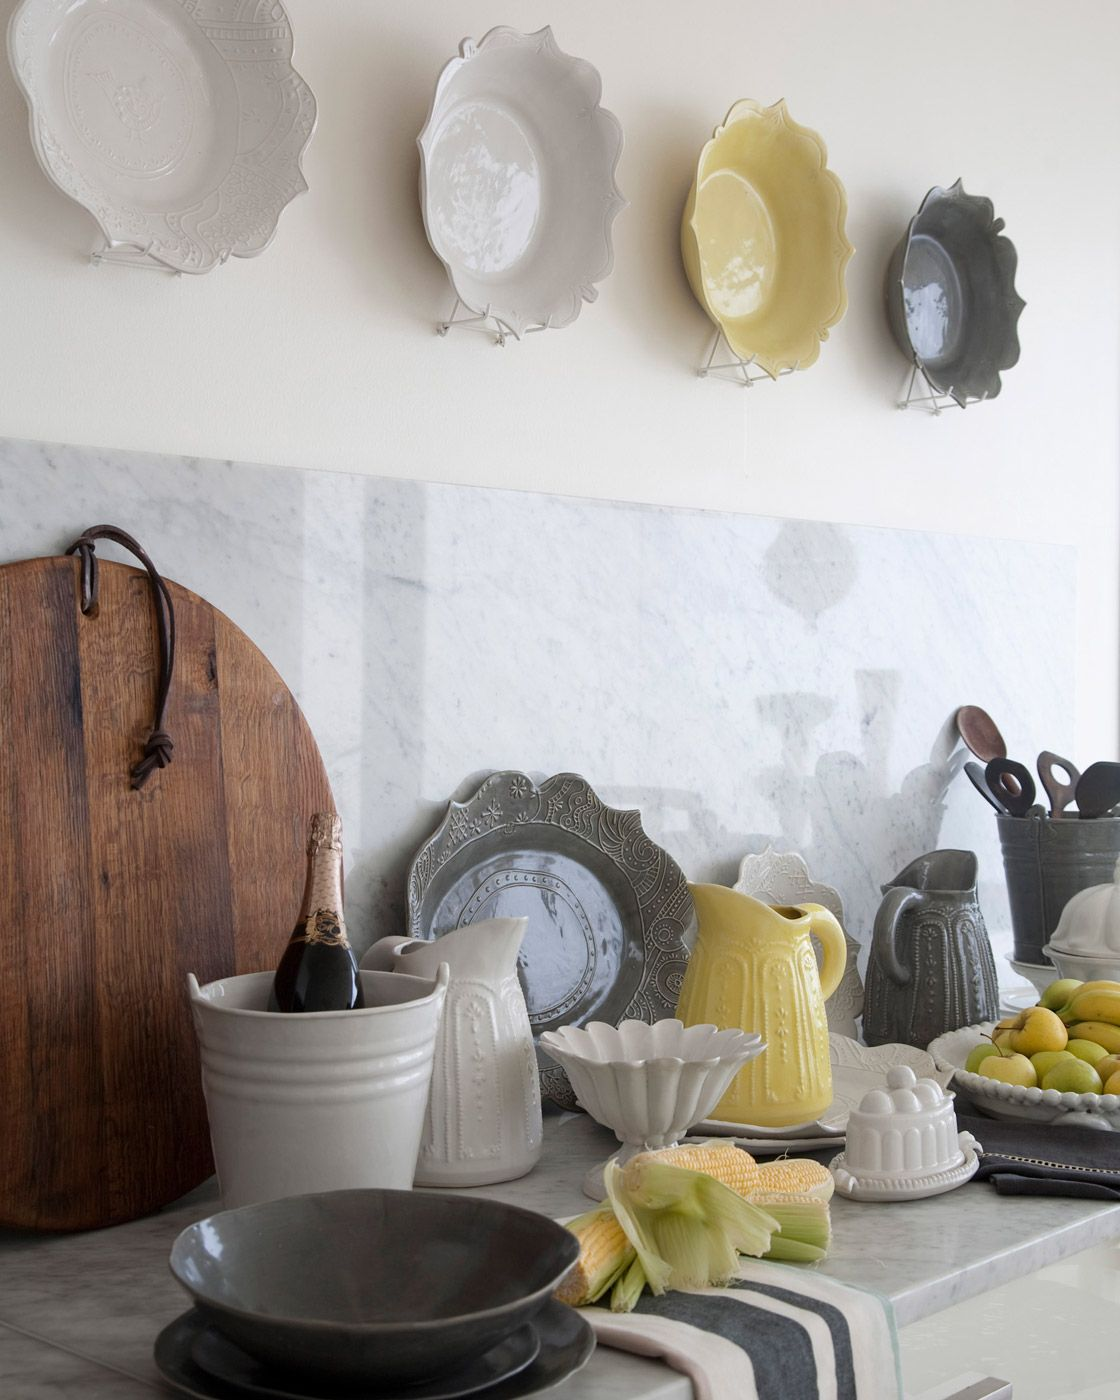 Mud Studio ceramics, South Africa | Africa/South Africa | Pinterest